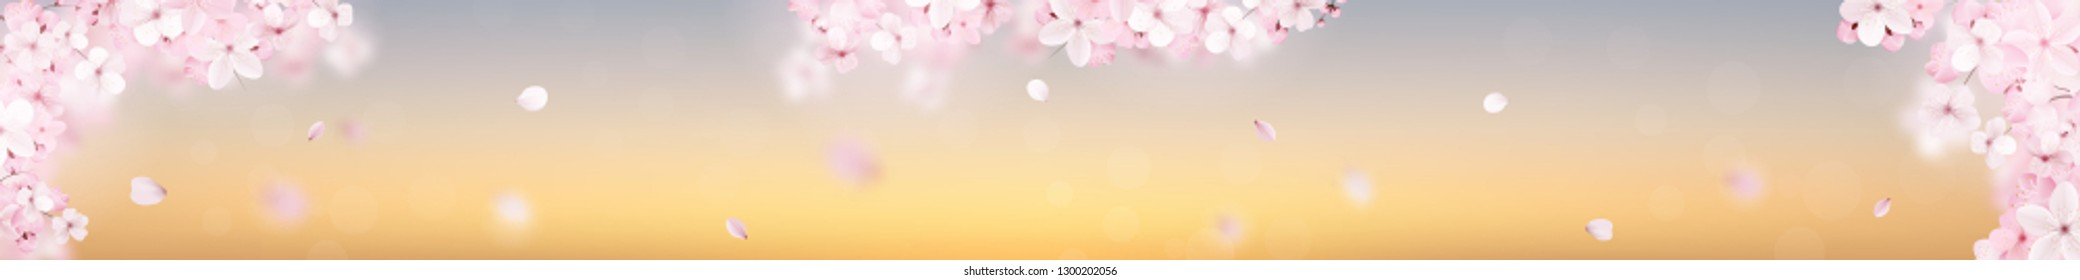 Beautiful delicate background with blossoming light pink sakura flowers. Panoramic glass panel, skinali. Delicate floral design. Vector illustration.